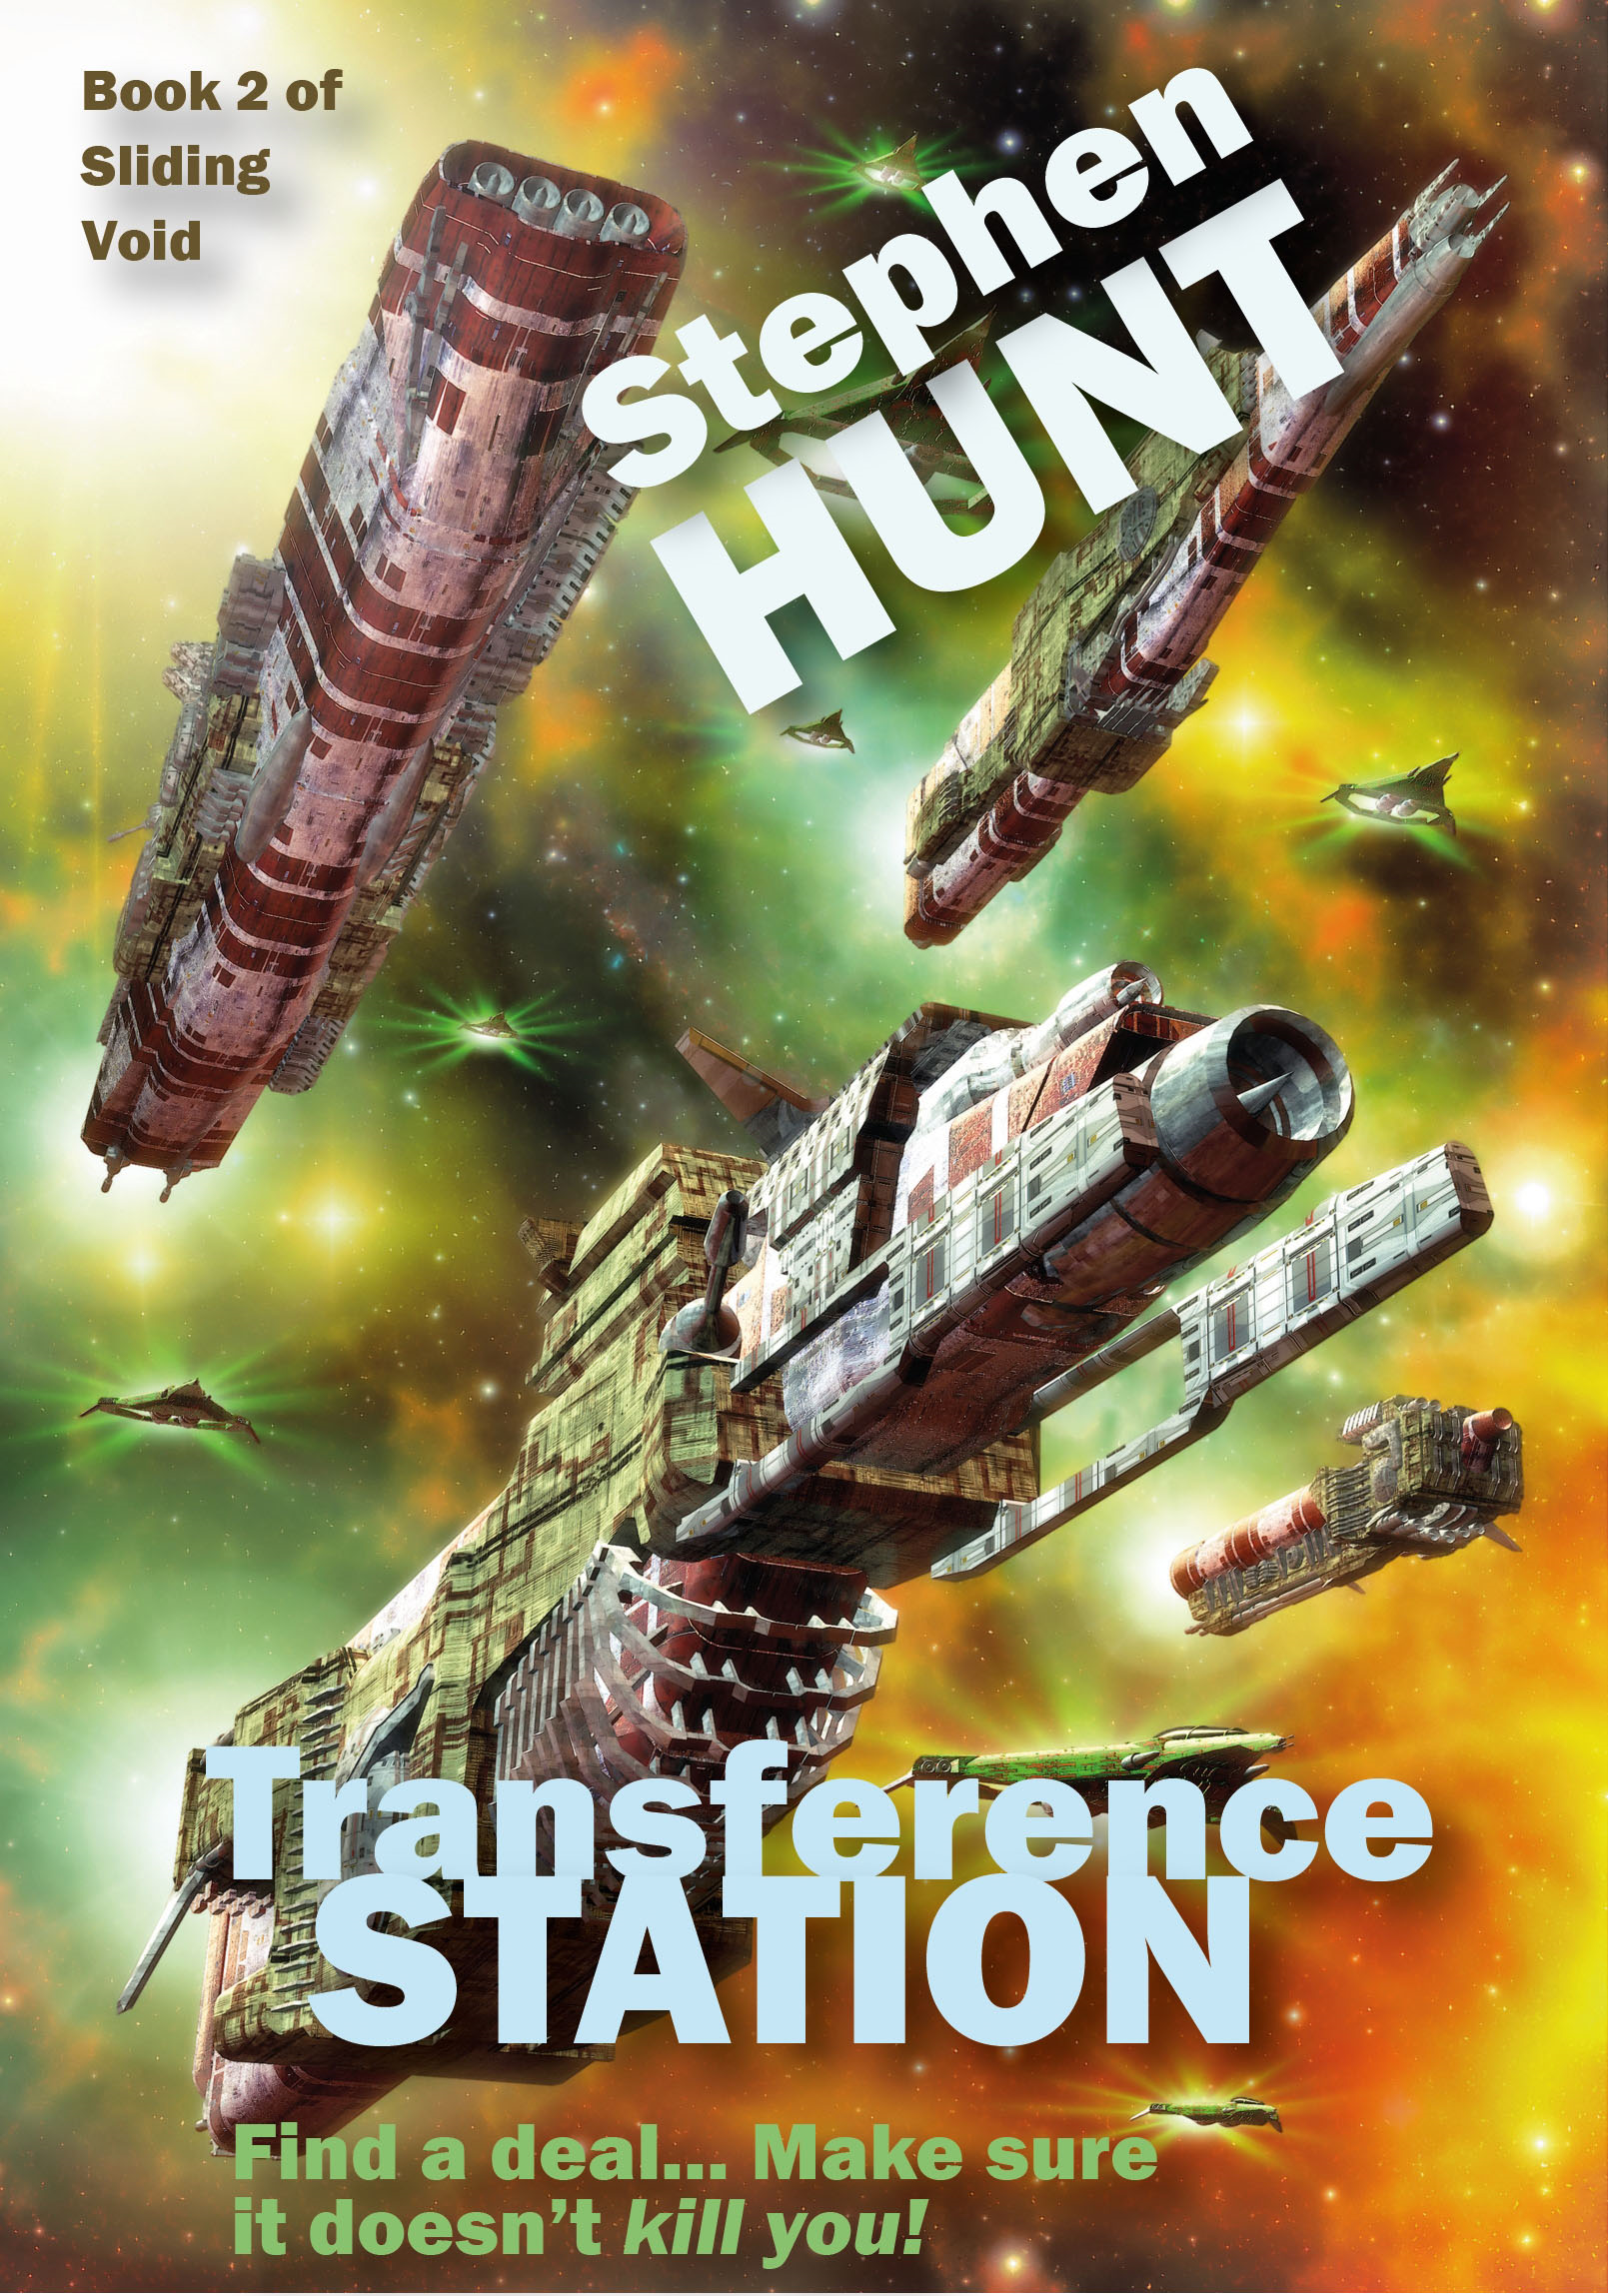 Transference Station By: Stephen Hunt